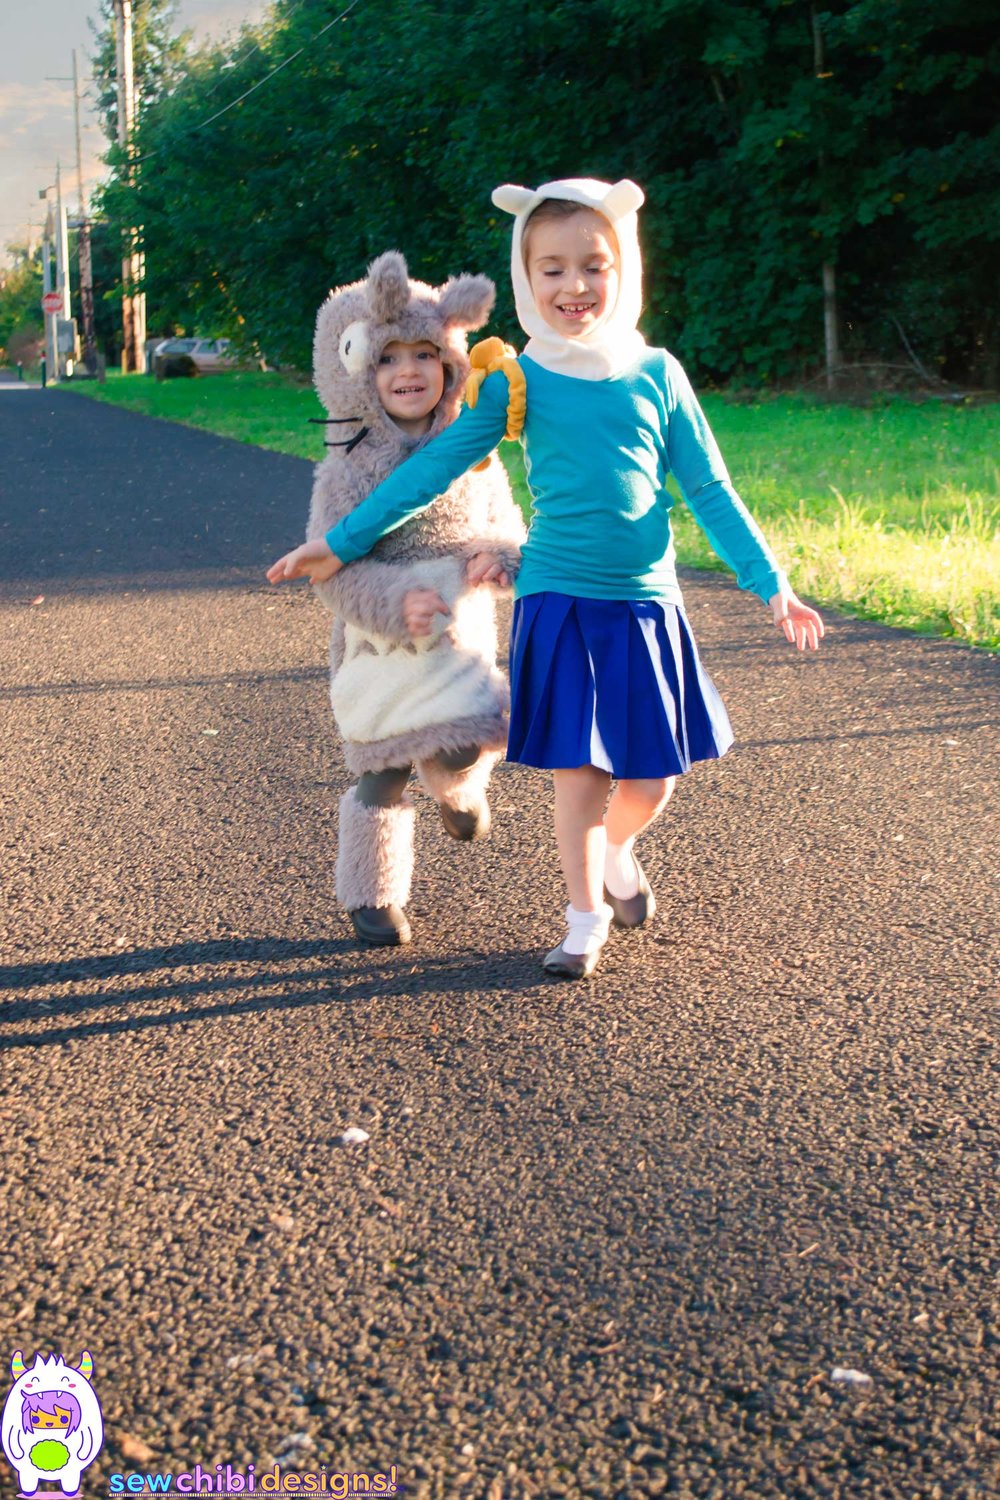 Chibi cosplay of Finn + Jake from Adventure Time and Totoro from My Neighbor Totoro sewn by Sew Chibi Designs for Halloween featuring the Bimaa Sweater PDF pattern